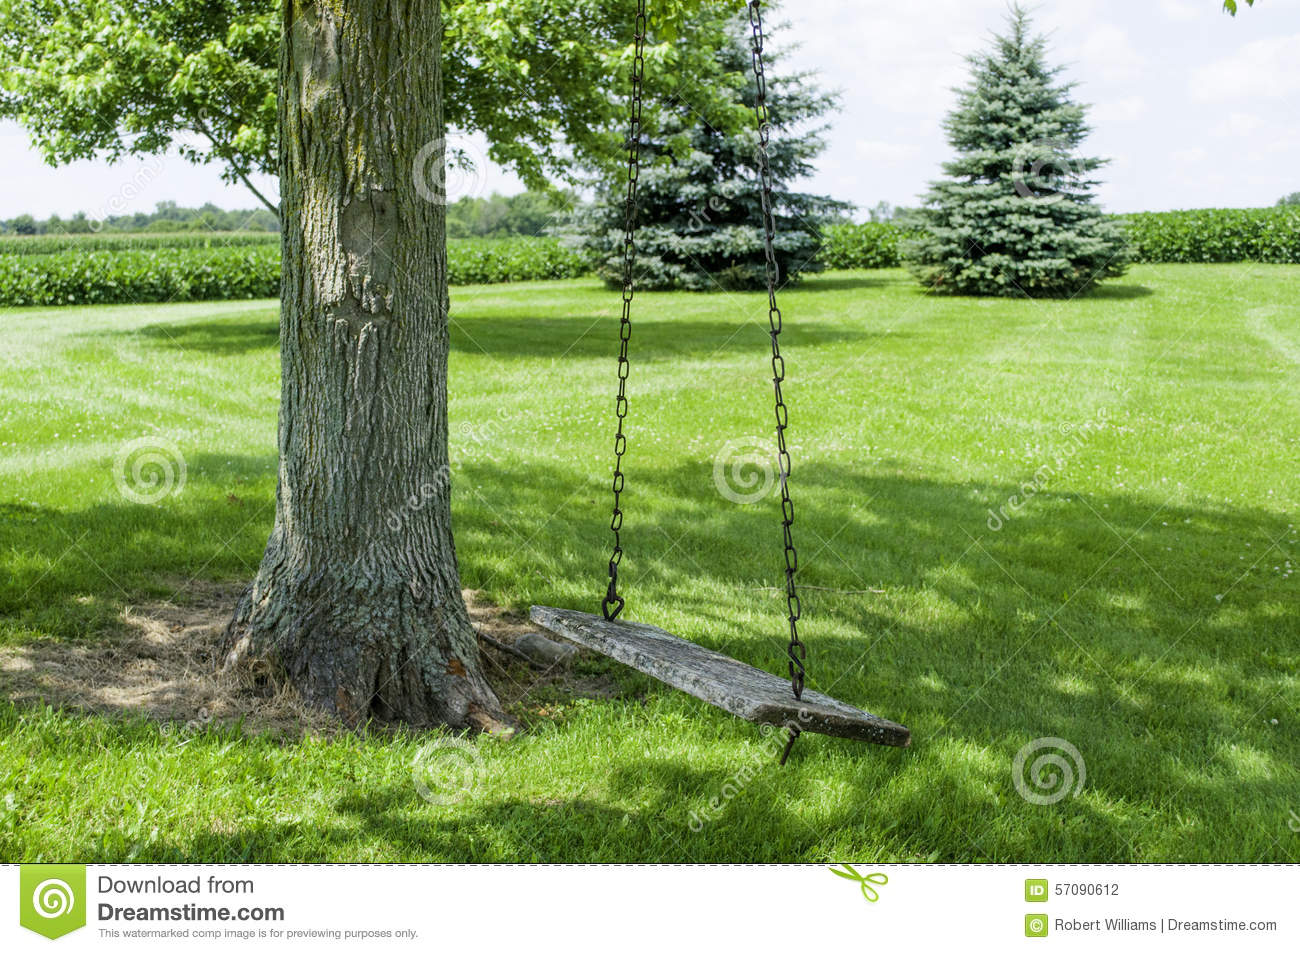 Tree Swing in the Shade